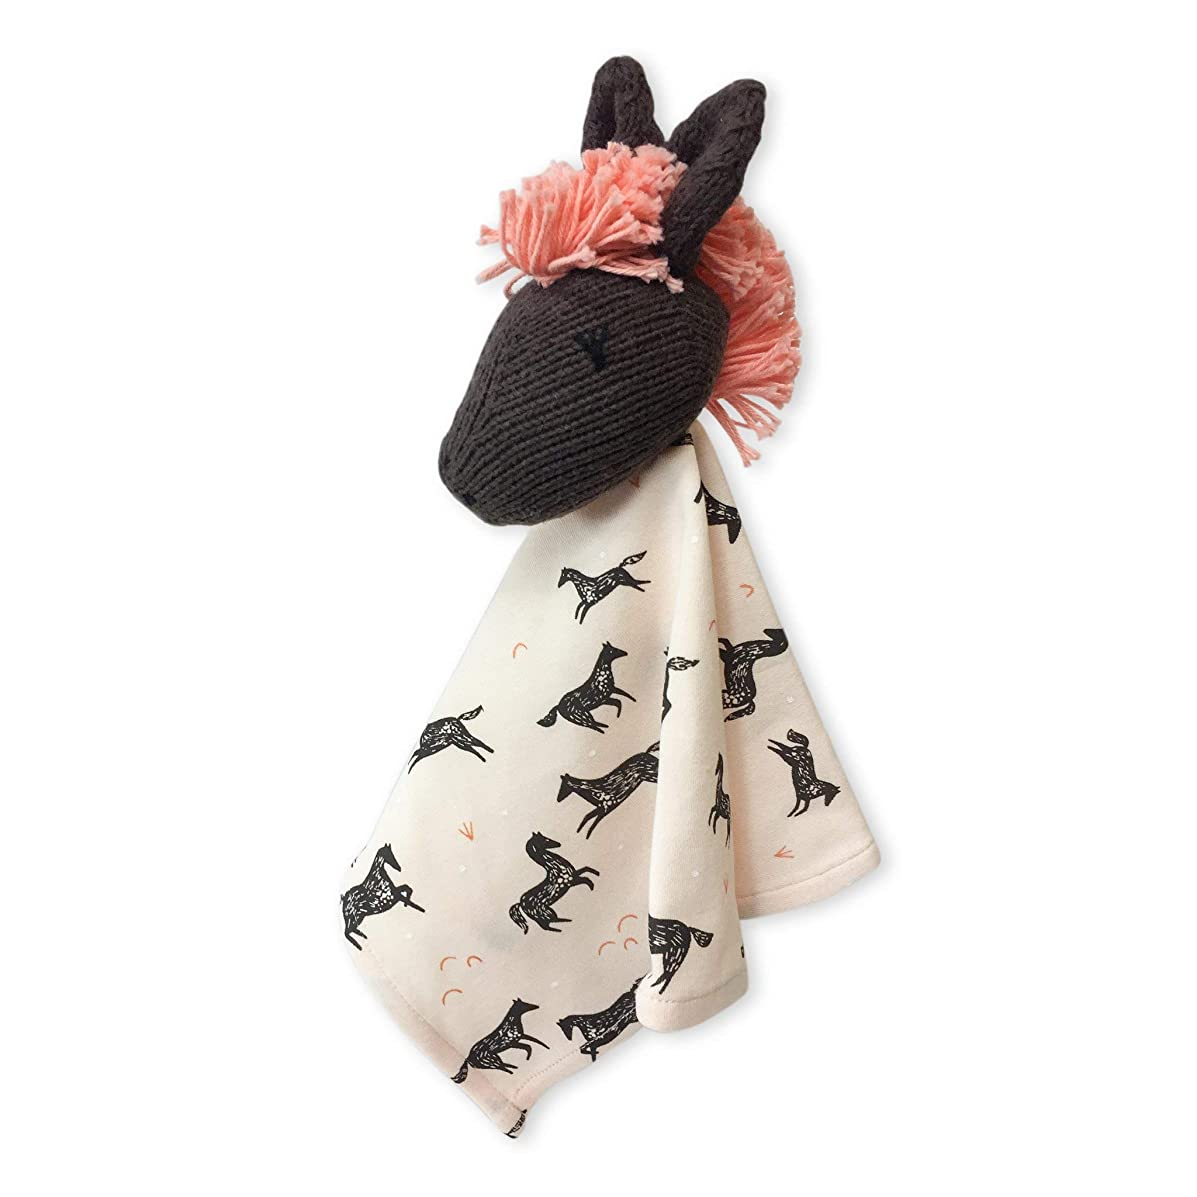 Finn + Emma Rattle Lovie Organic Cotton Knit Comfort Toy for Baby Boy or Girl – Molly The Horse